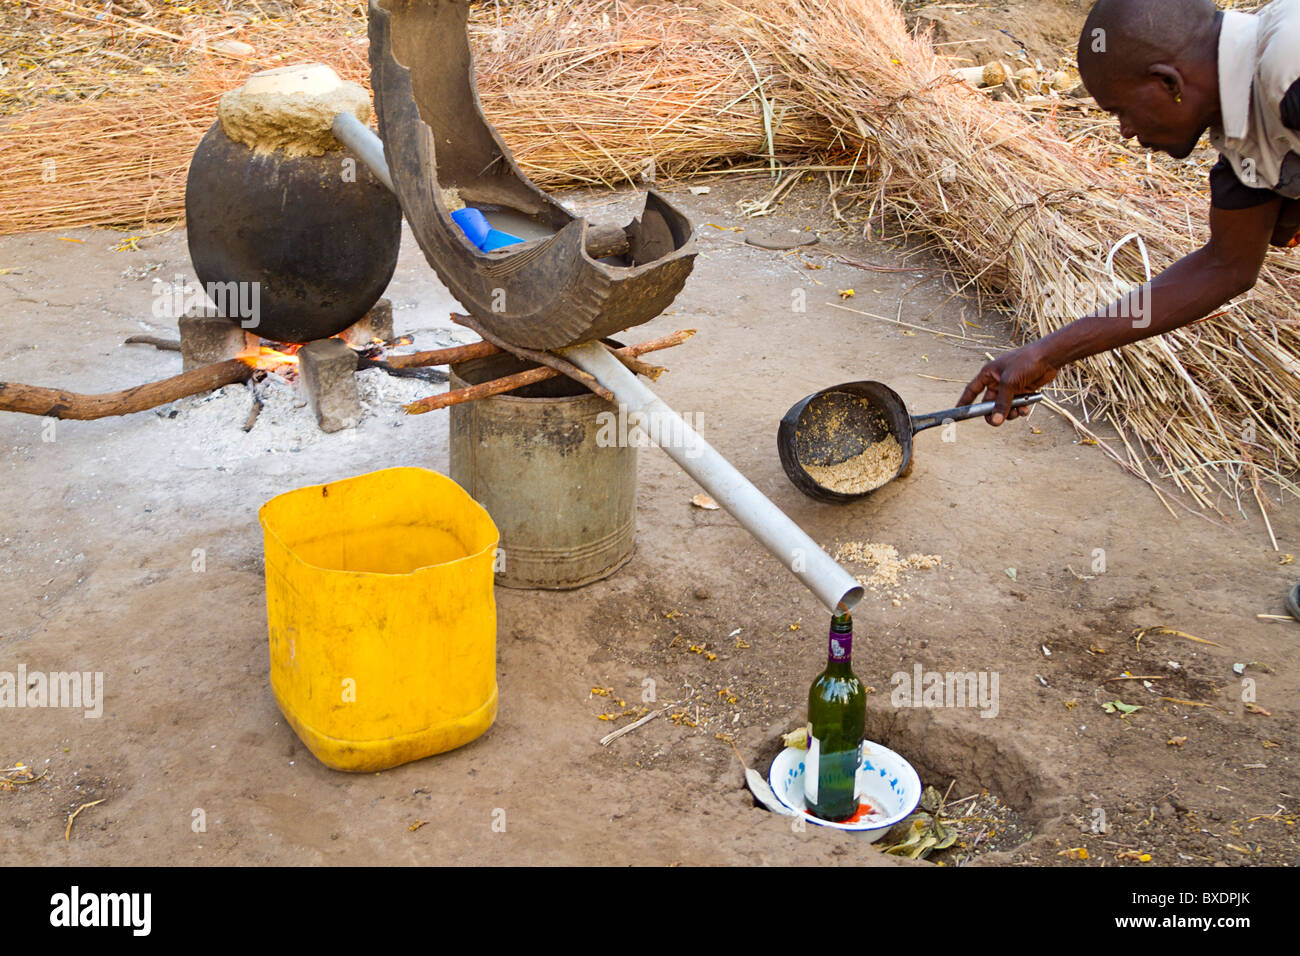 Man checks pot of cornmeal mash which will be used to make liquor in his village in Zambia, Africa. - Stock Image